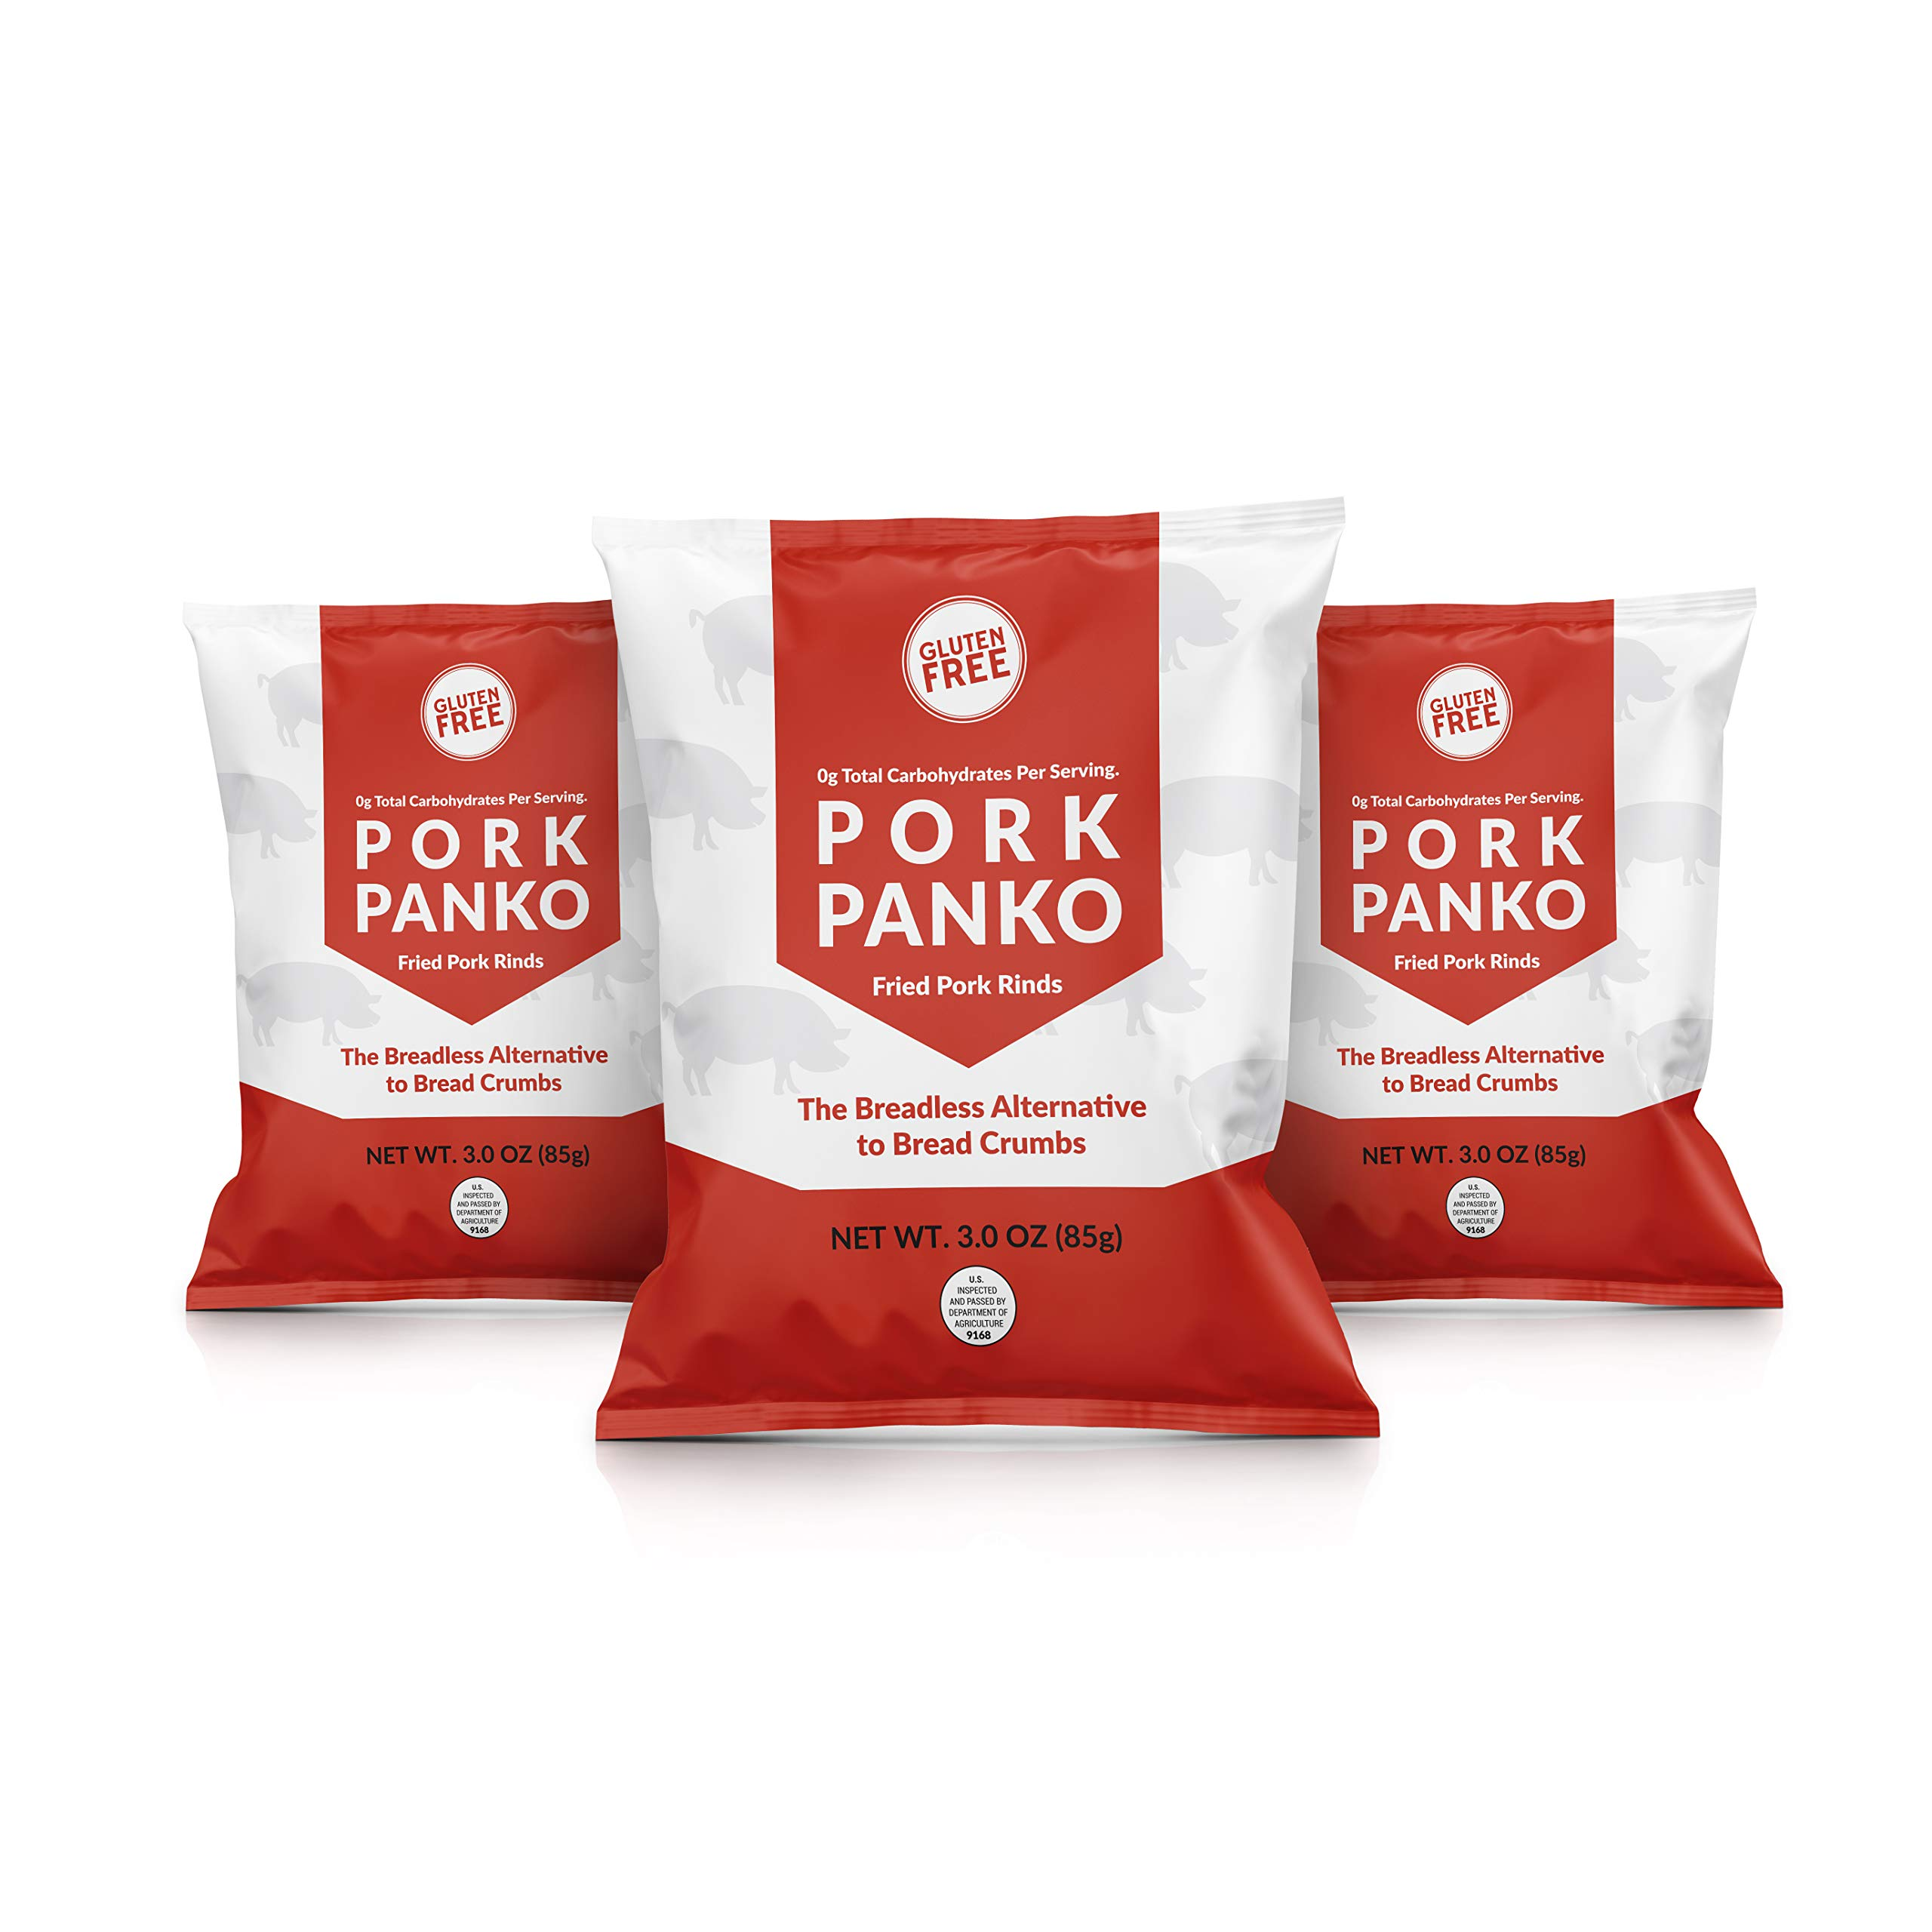 Pork Panko - 0 Carb Pork Rind Breadcrumbs - Keto and Paleo Friendly, Naturally Gluten-Free and Carb-Free (3 x 3oz Packs) by Bacon's Heir